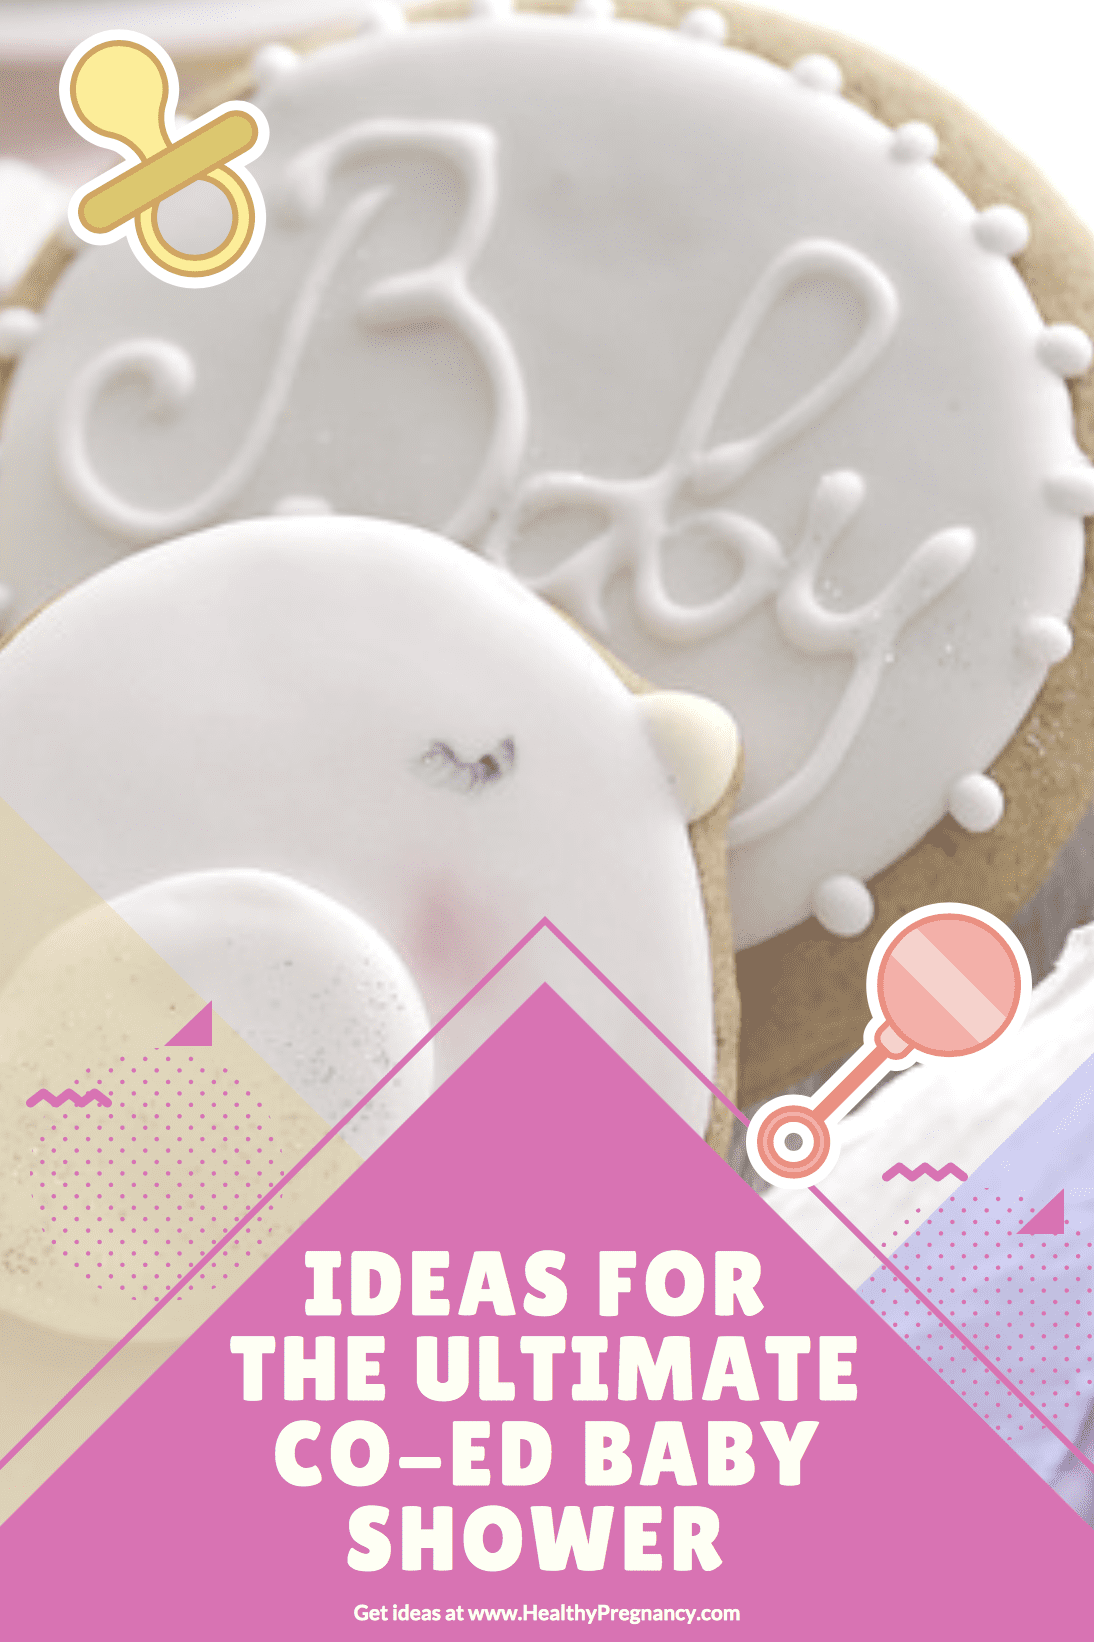 Ideas for Planning the Ultimate Co-Ed Baby Shower